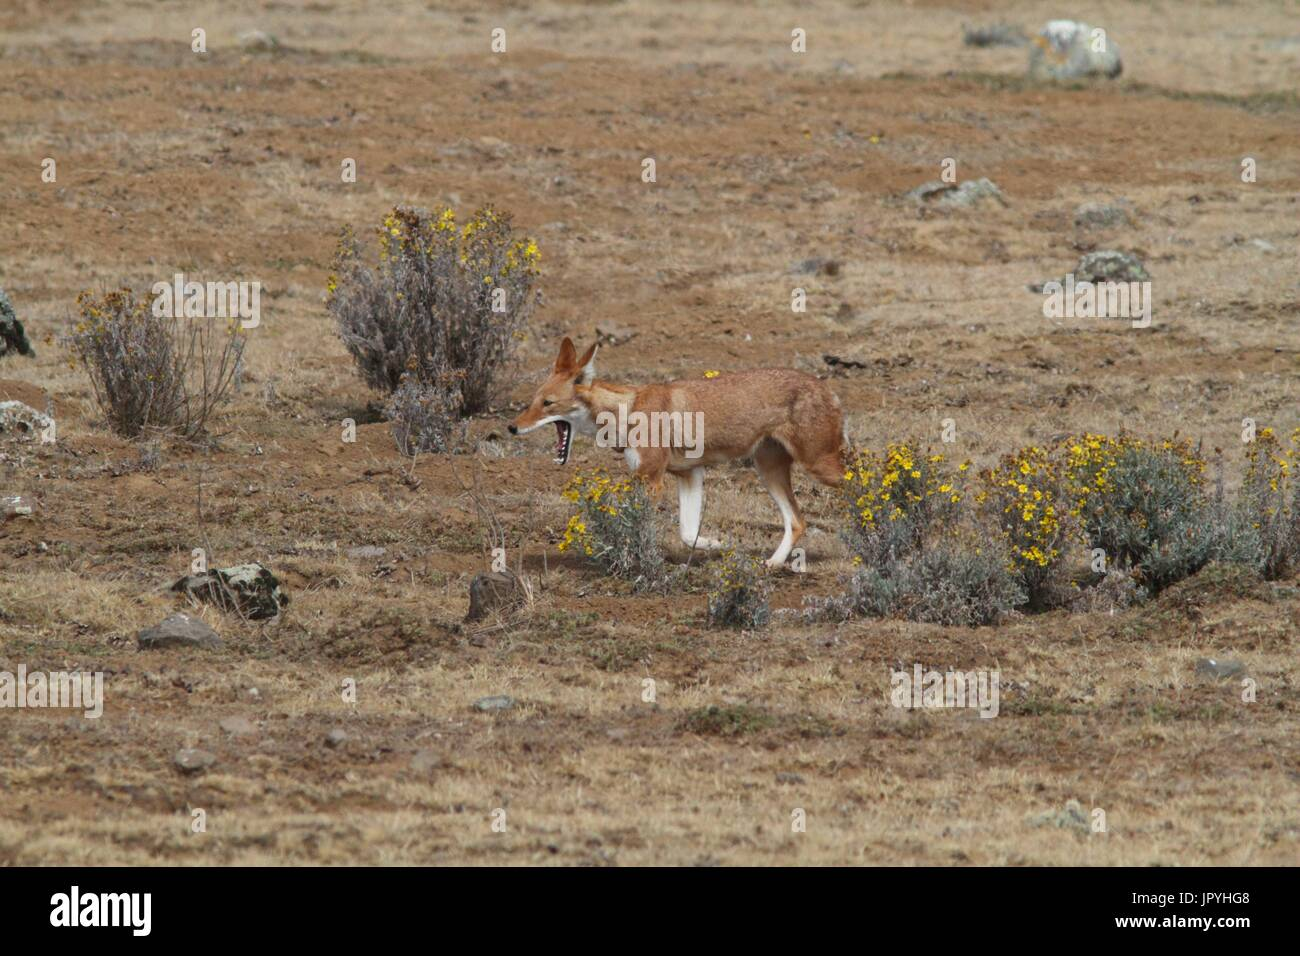 Simian Jackal walking on heath - Ethiopia - Stock Image